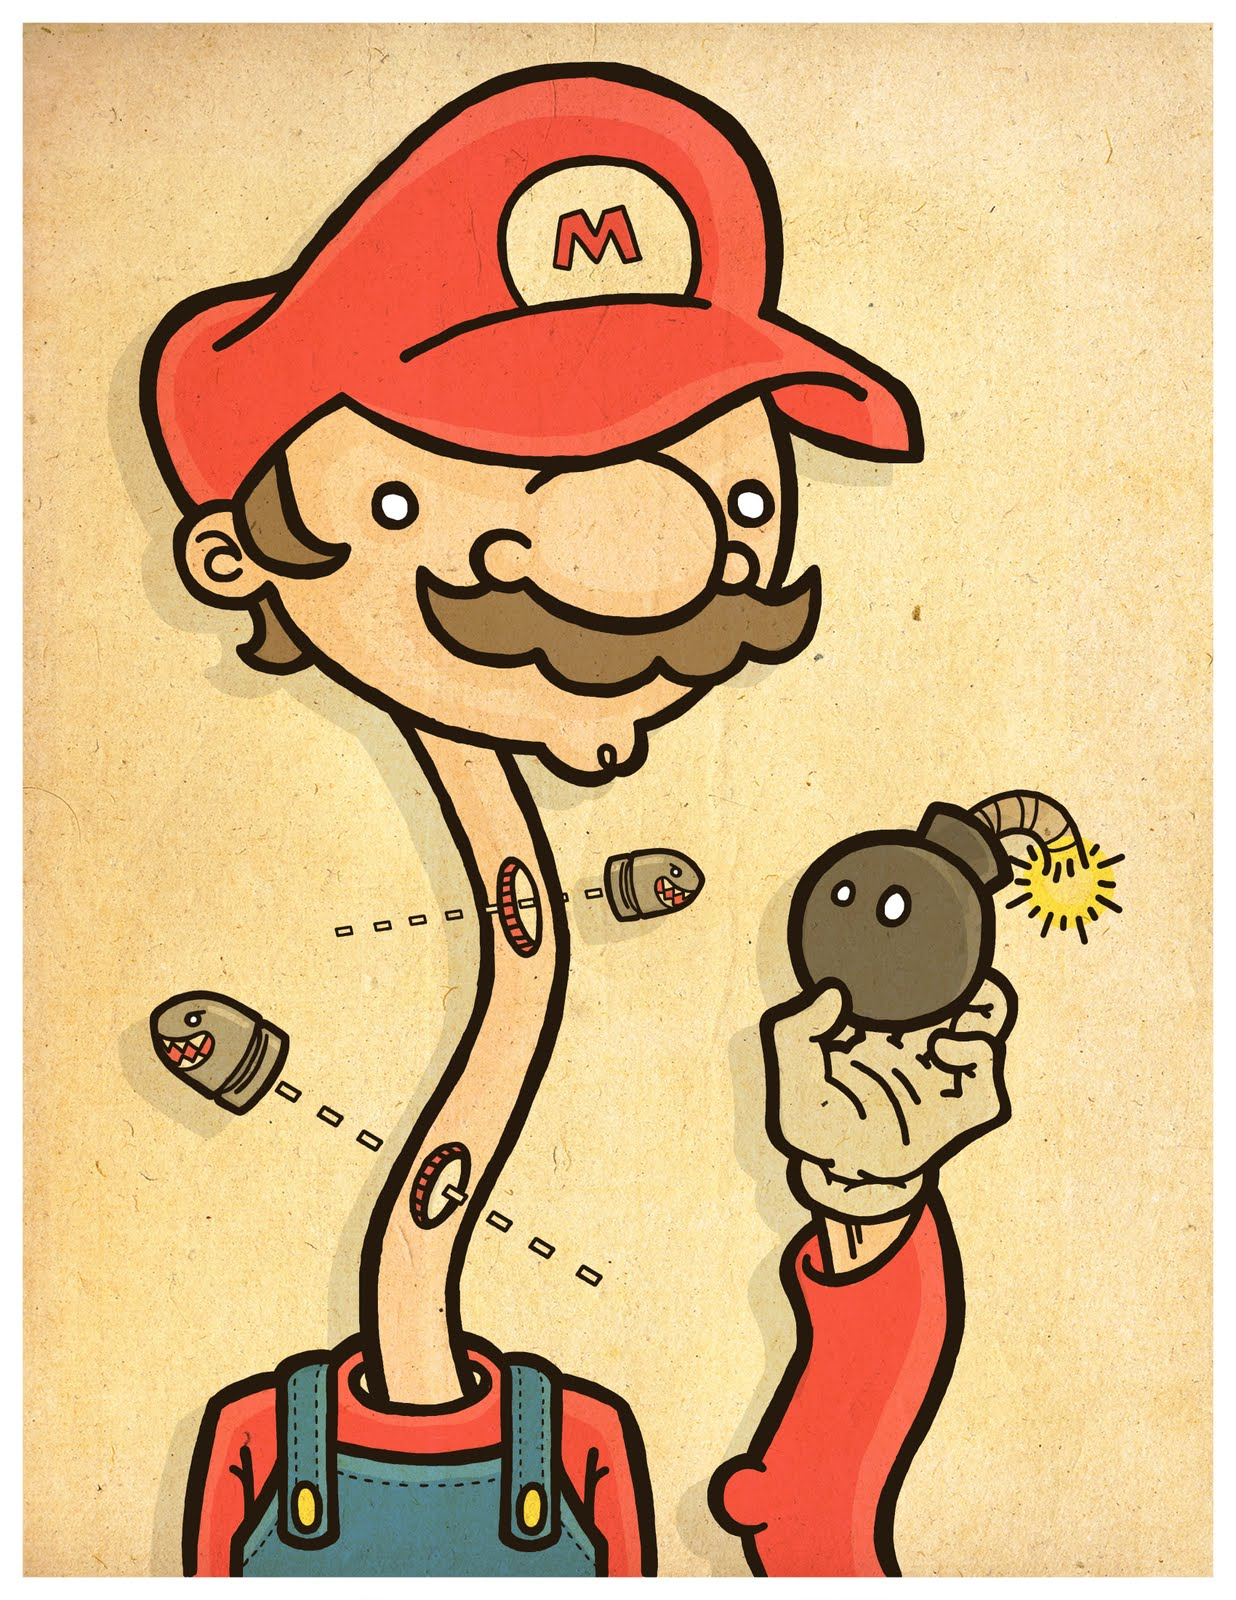 Odd Creations: Super Mario And Link In The Same Predicament